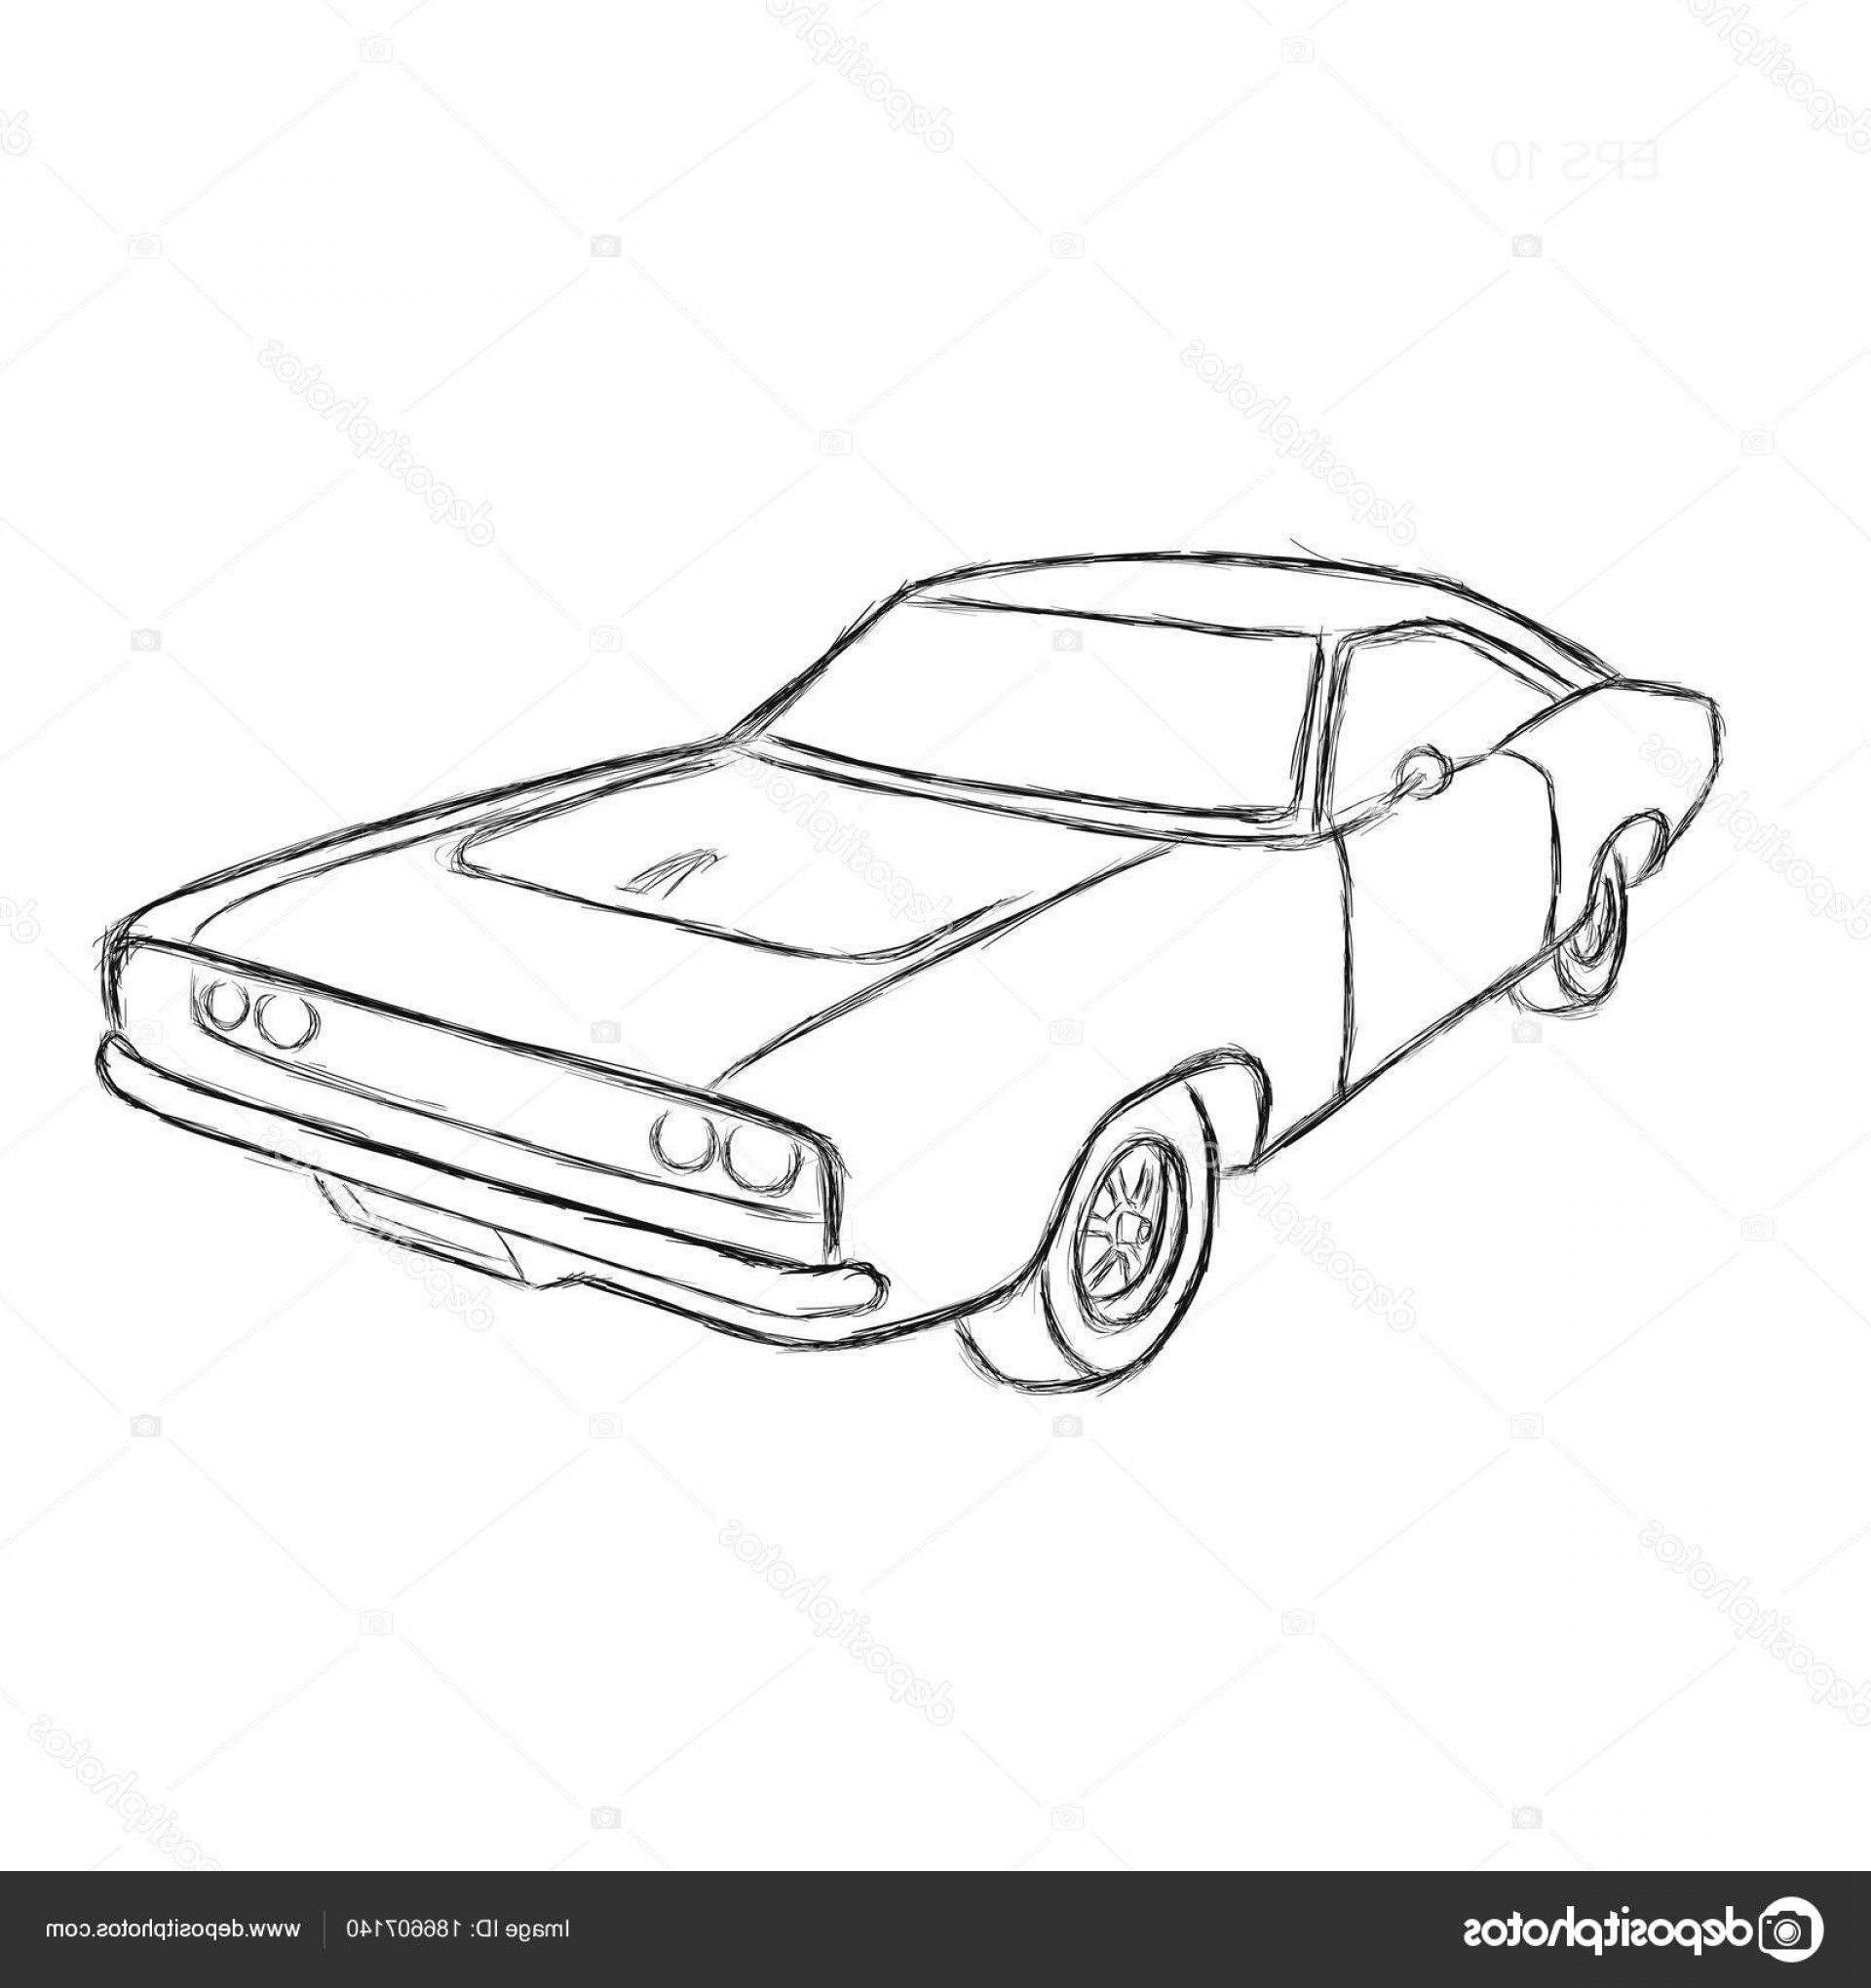 Muscle Car Silhouette Vector High Res: Stock Illustration Classic American Muscle Car Hand